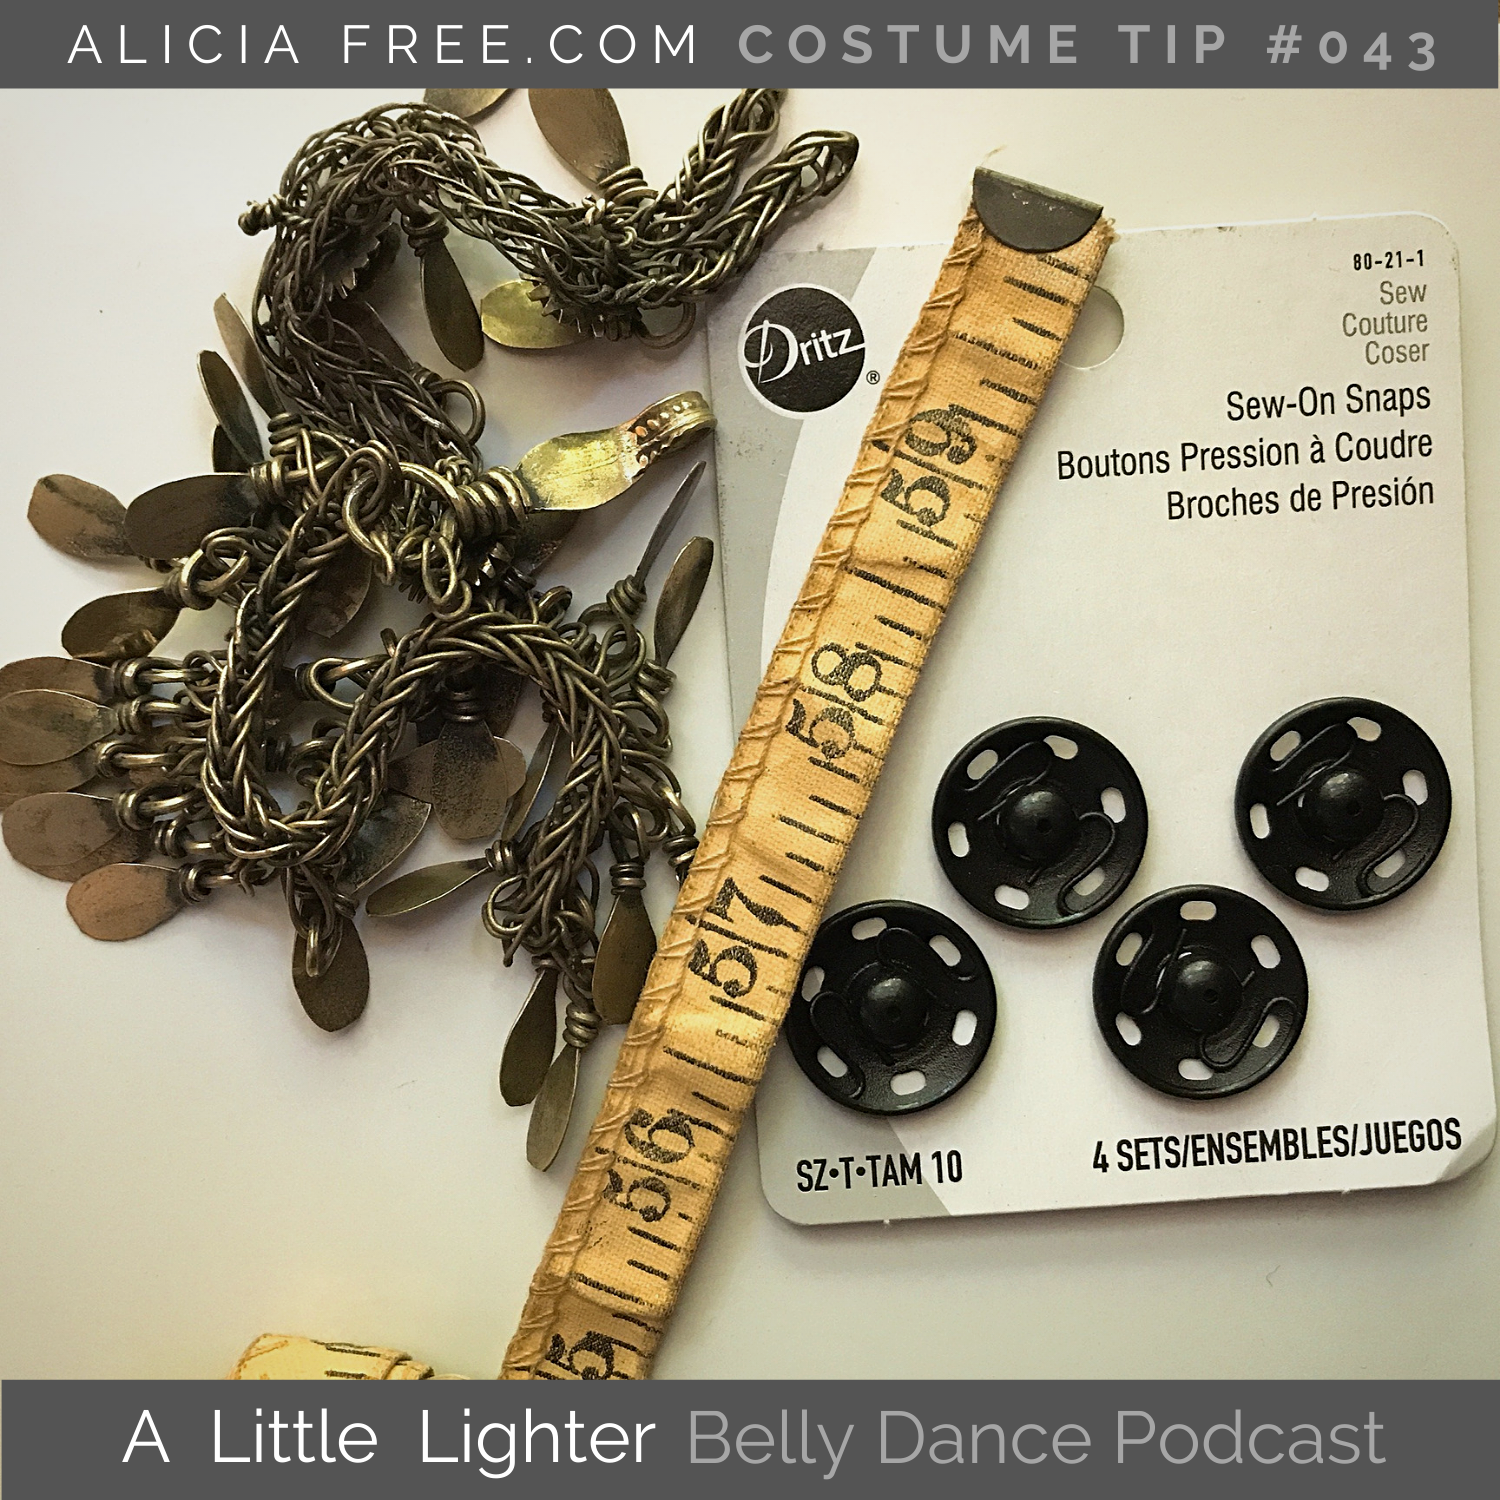 Belly Dance Podcast 043 Costume Tip